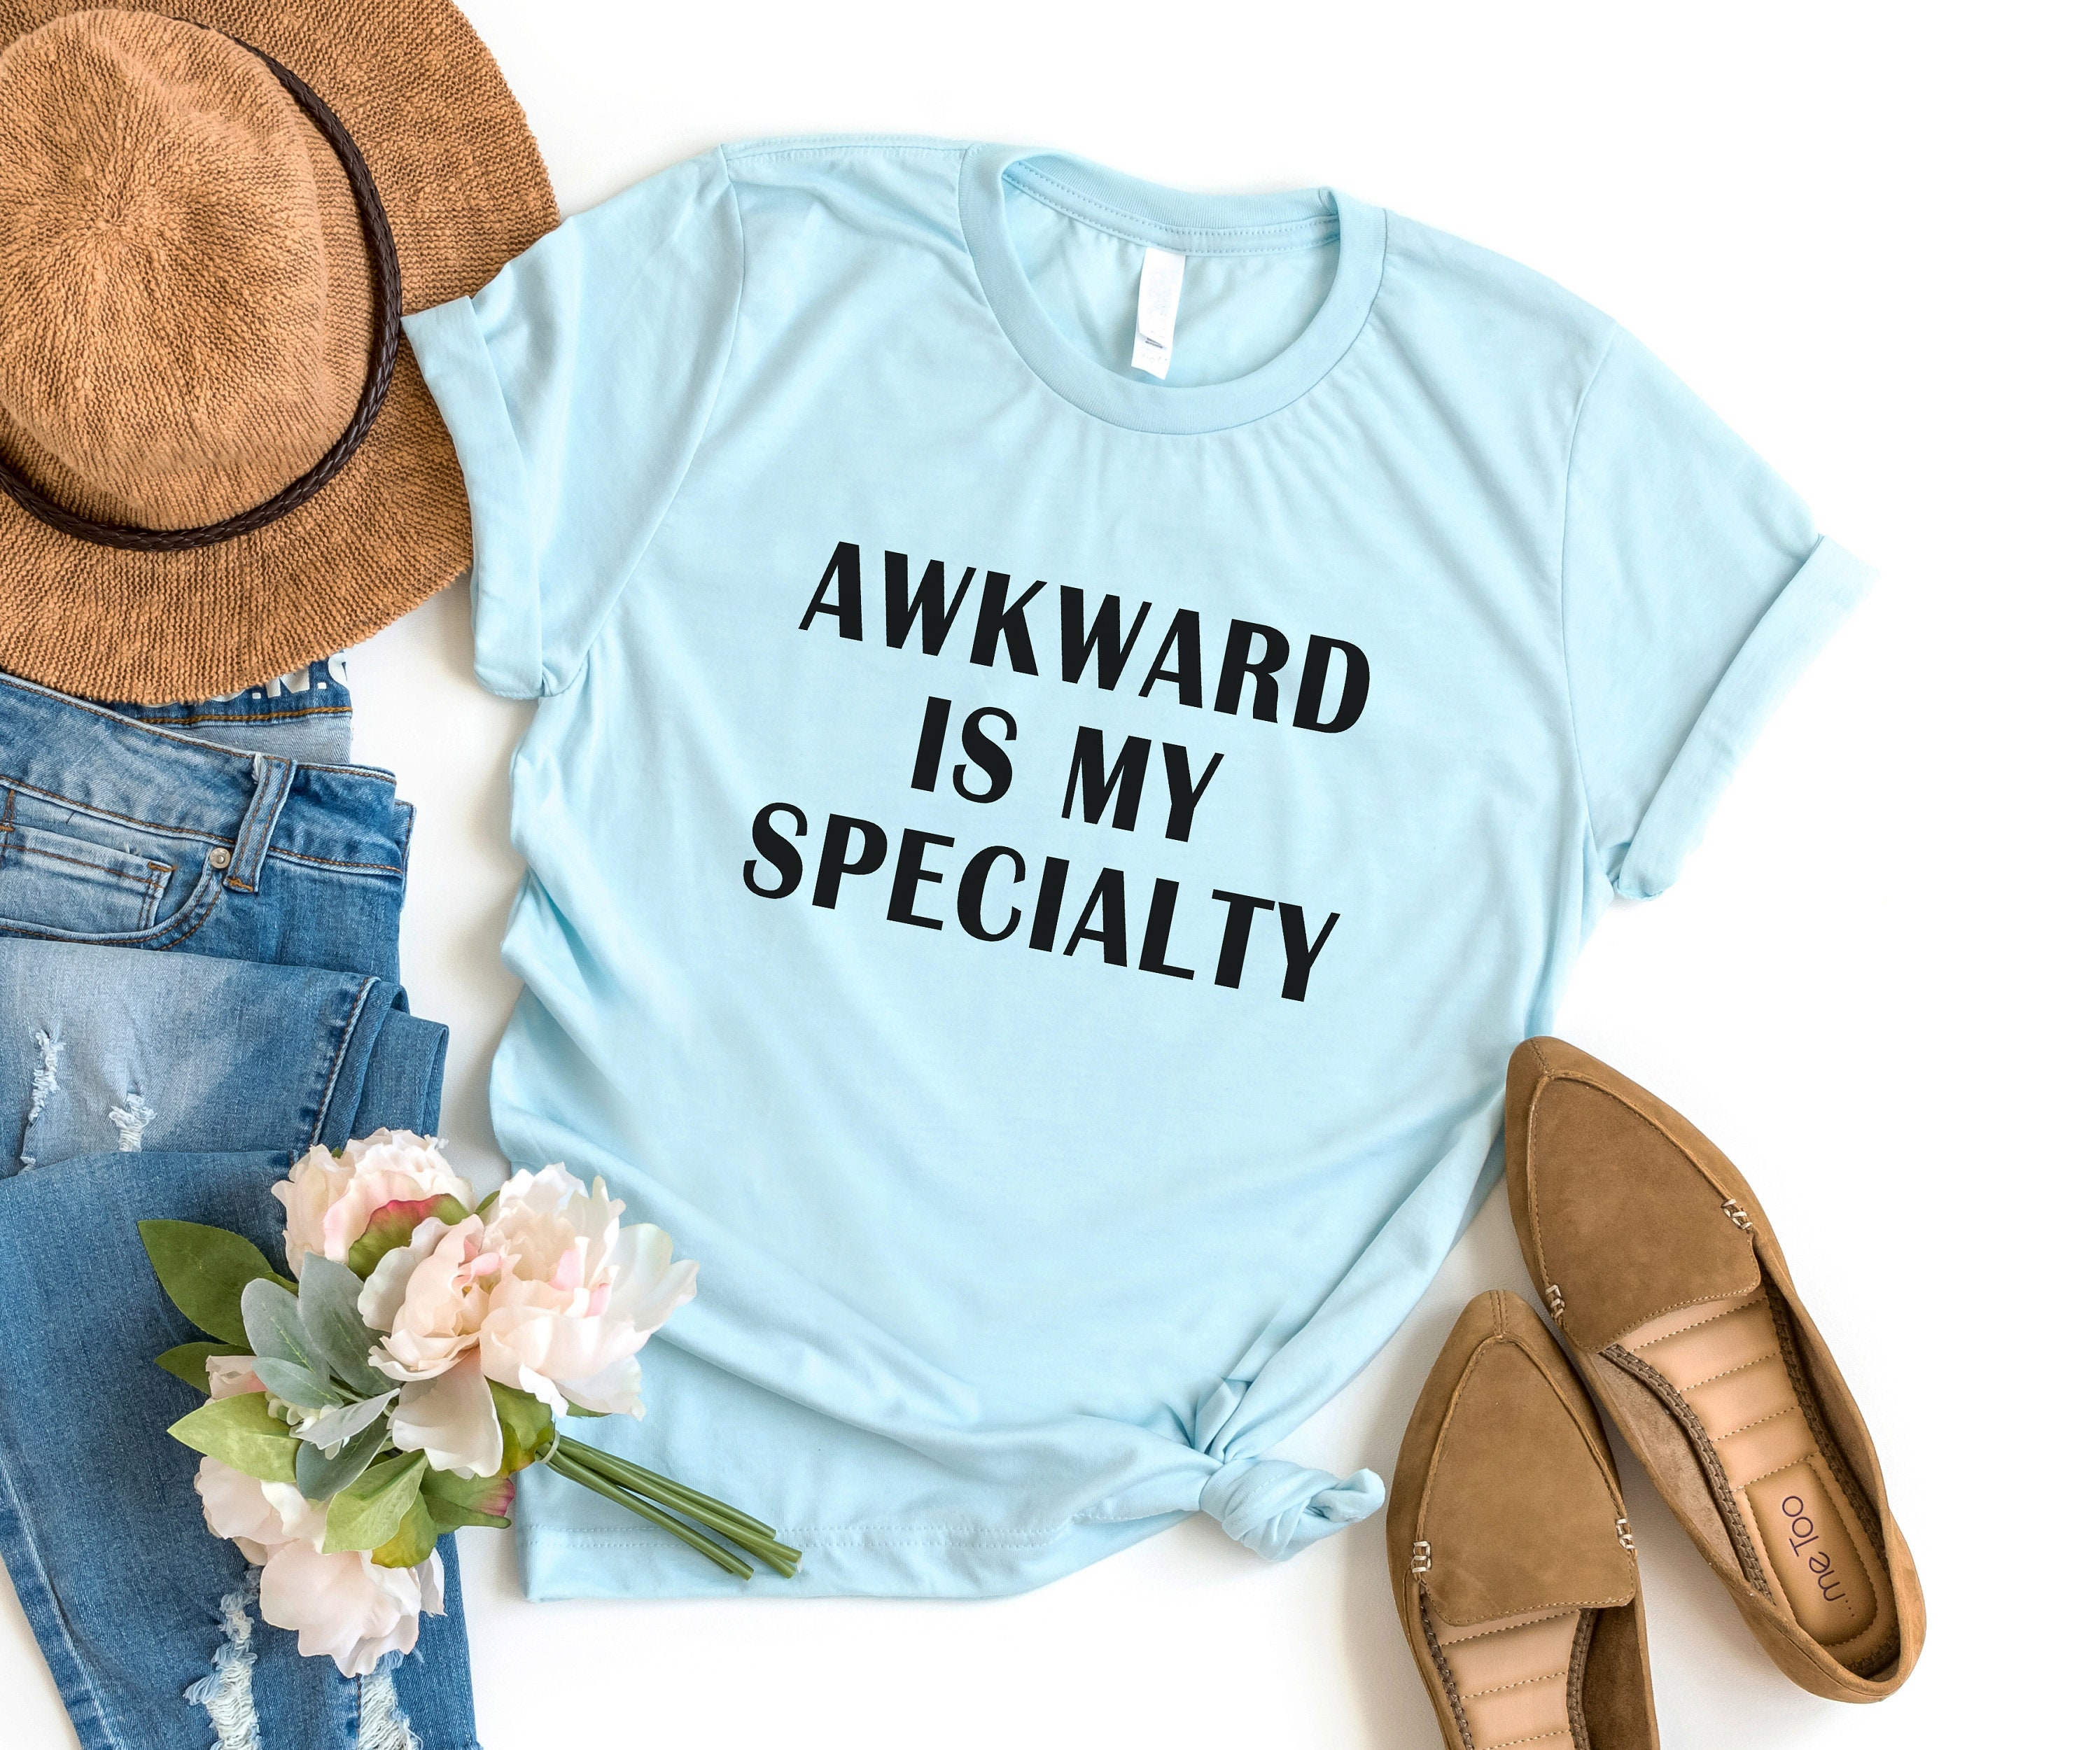 2007e5c39c32a Awkward is my specialty Funny TShirts Instagram Tumblr T Shirt Womens  Graphic Tees Shirts for Teens Girls Gifts Screen print TShirt